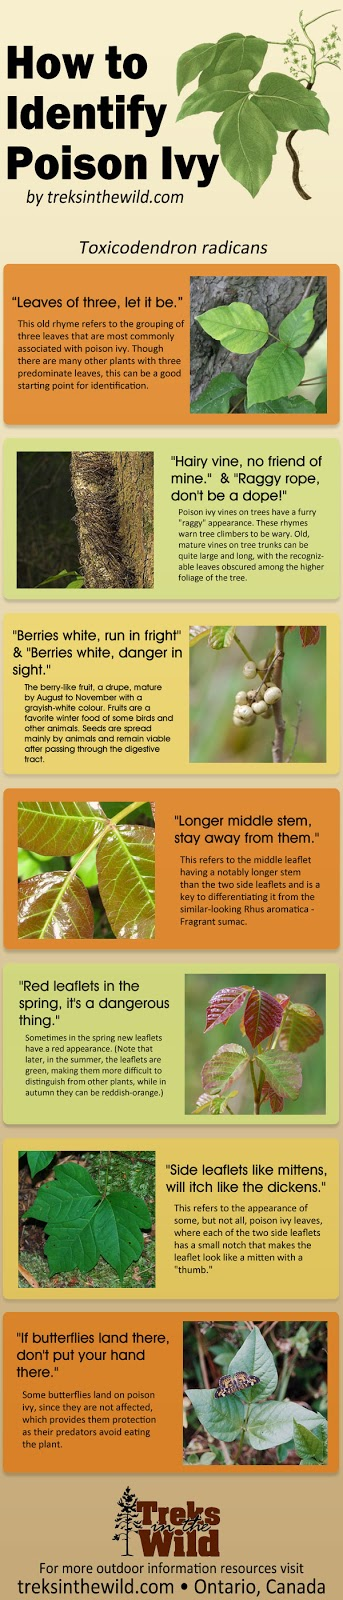 Infographic On How To Identify Poison Ivy